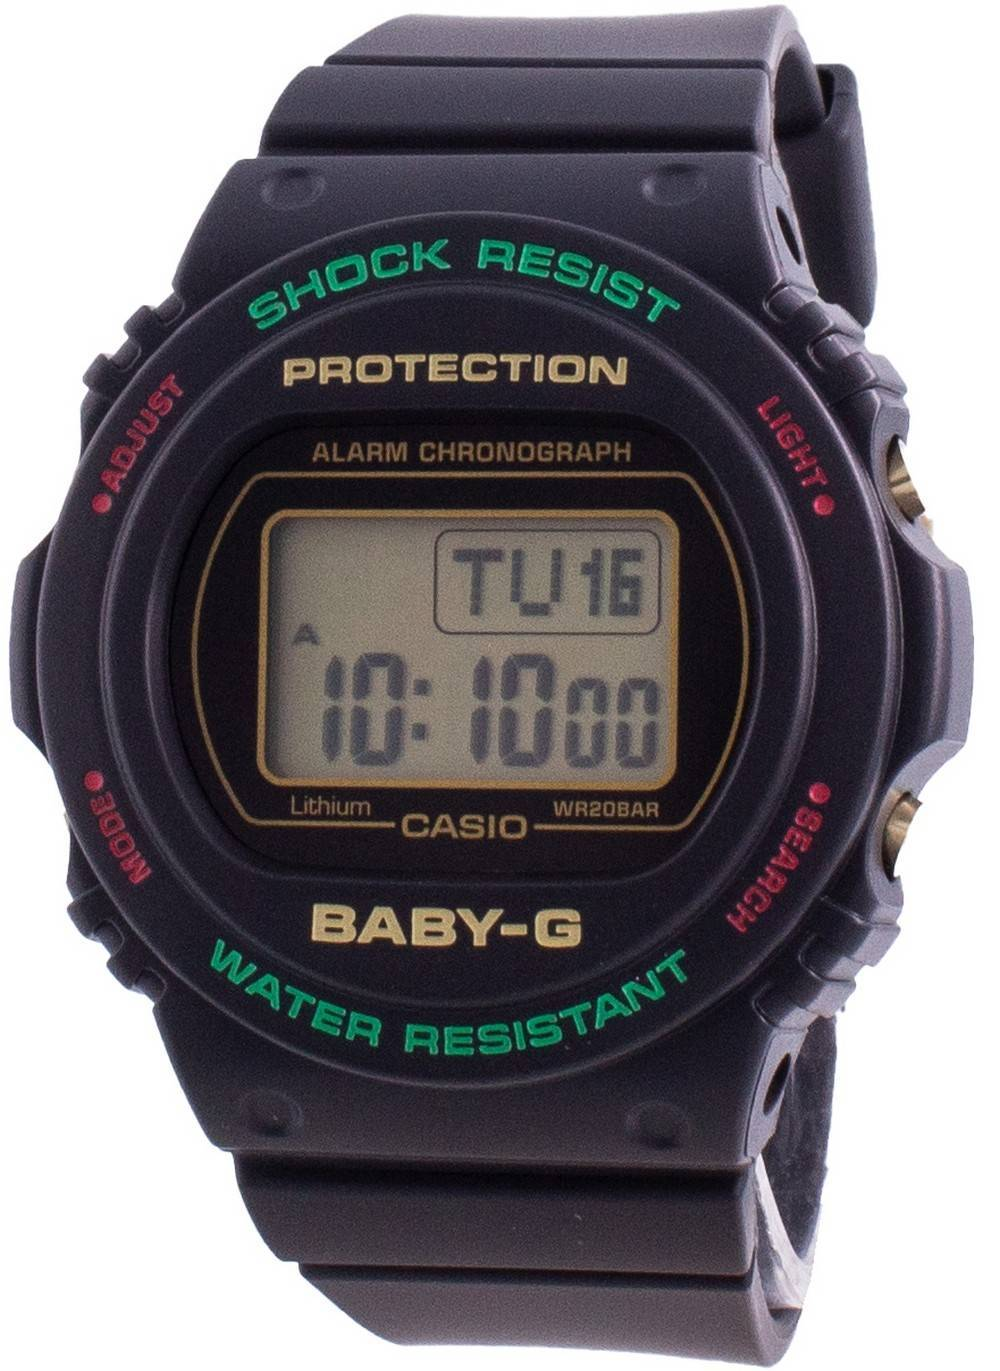 Baby-G BGD-570TH-1 Shock Resistant 200M Women's Watch